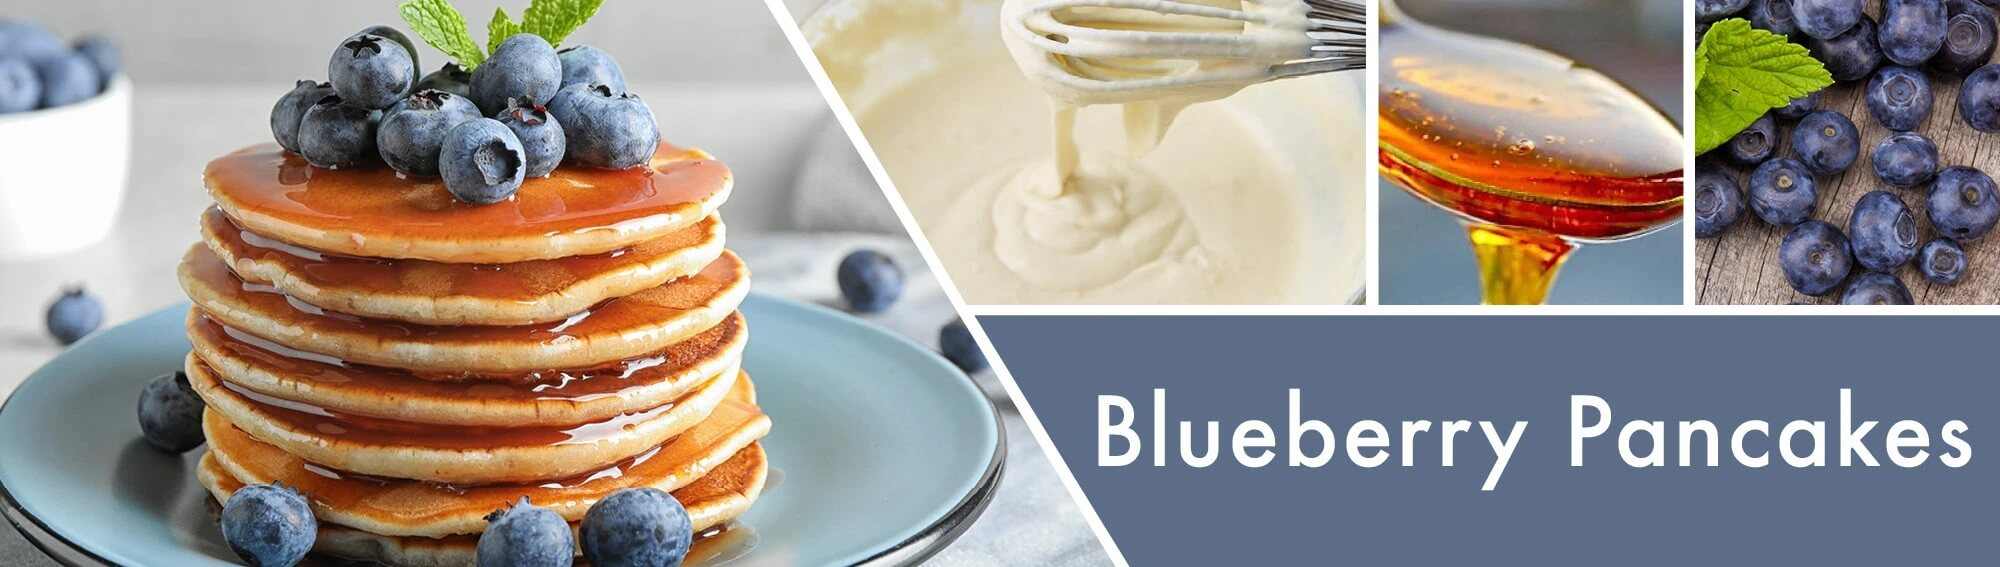 Blueberry-Pancakes-Banner